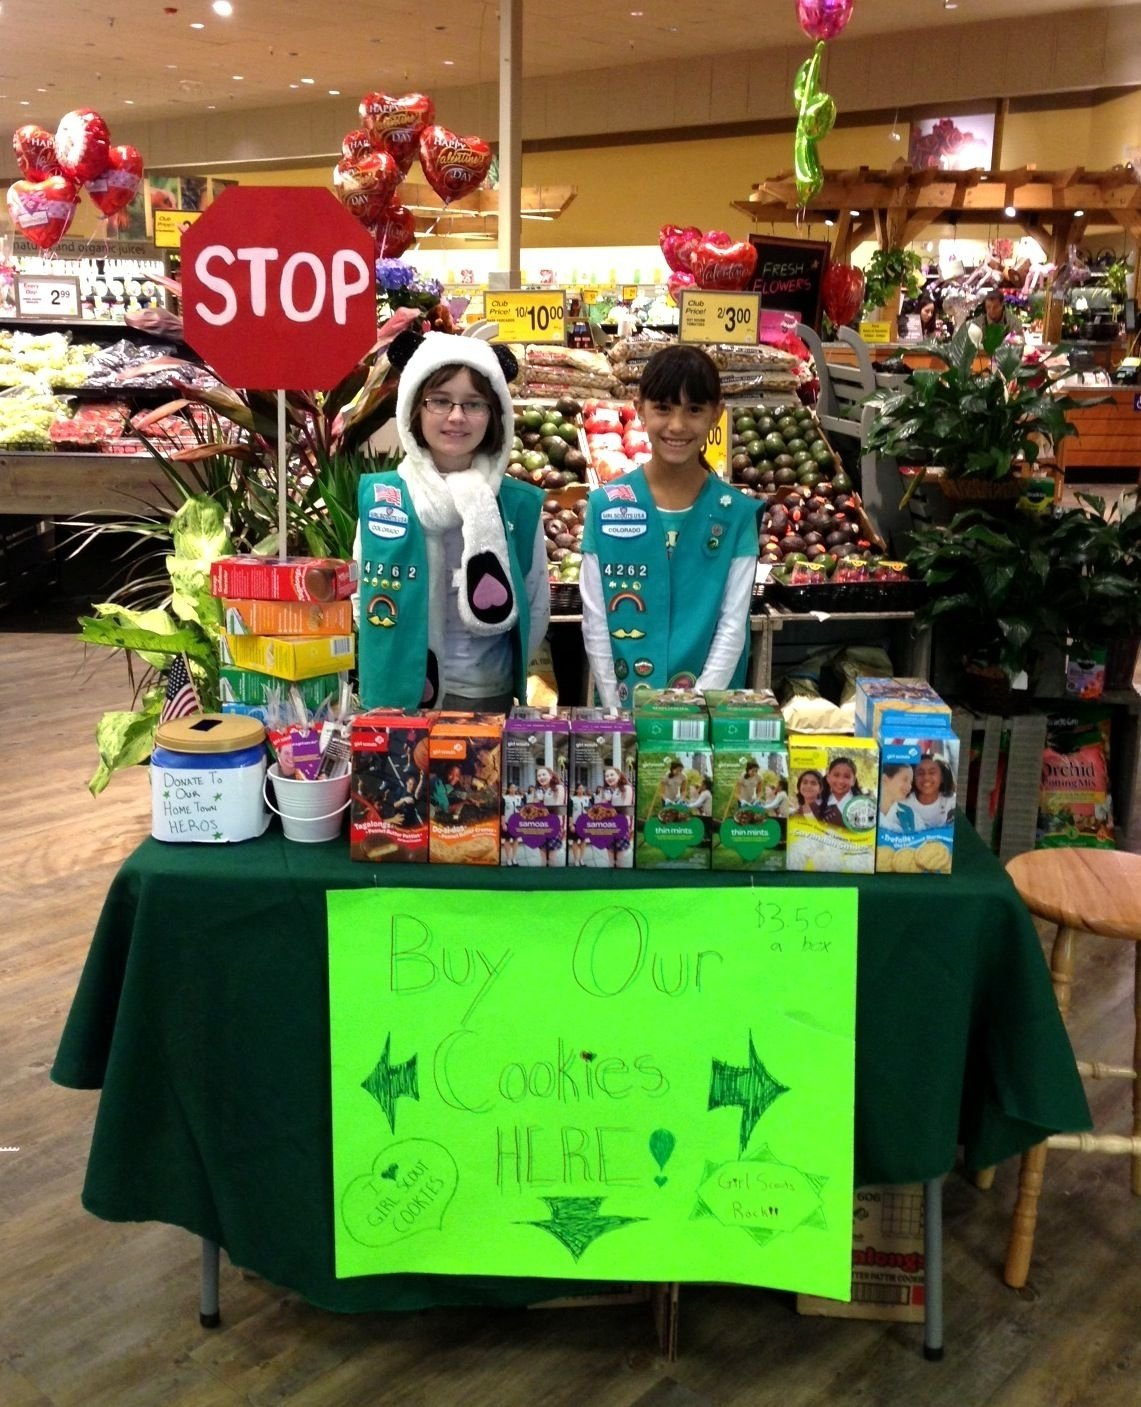 10 Unique Girl Scout Cookie Booth Ideas cookie booth idea girl scouts pinterest booth ideas and gs cookies